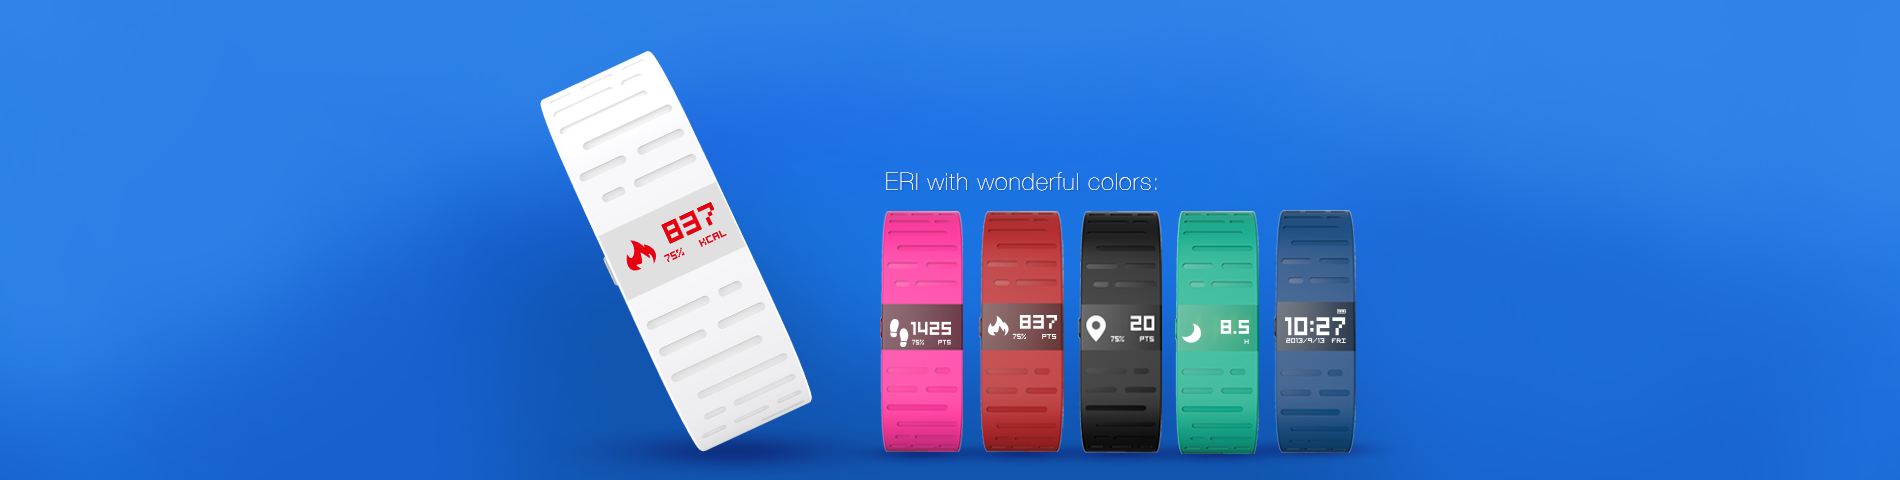 ERI - The thinnest route tracking smart sport wristband.